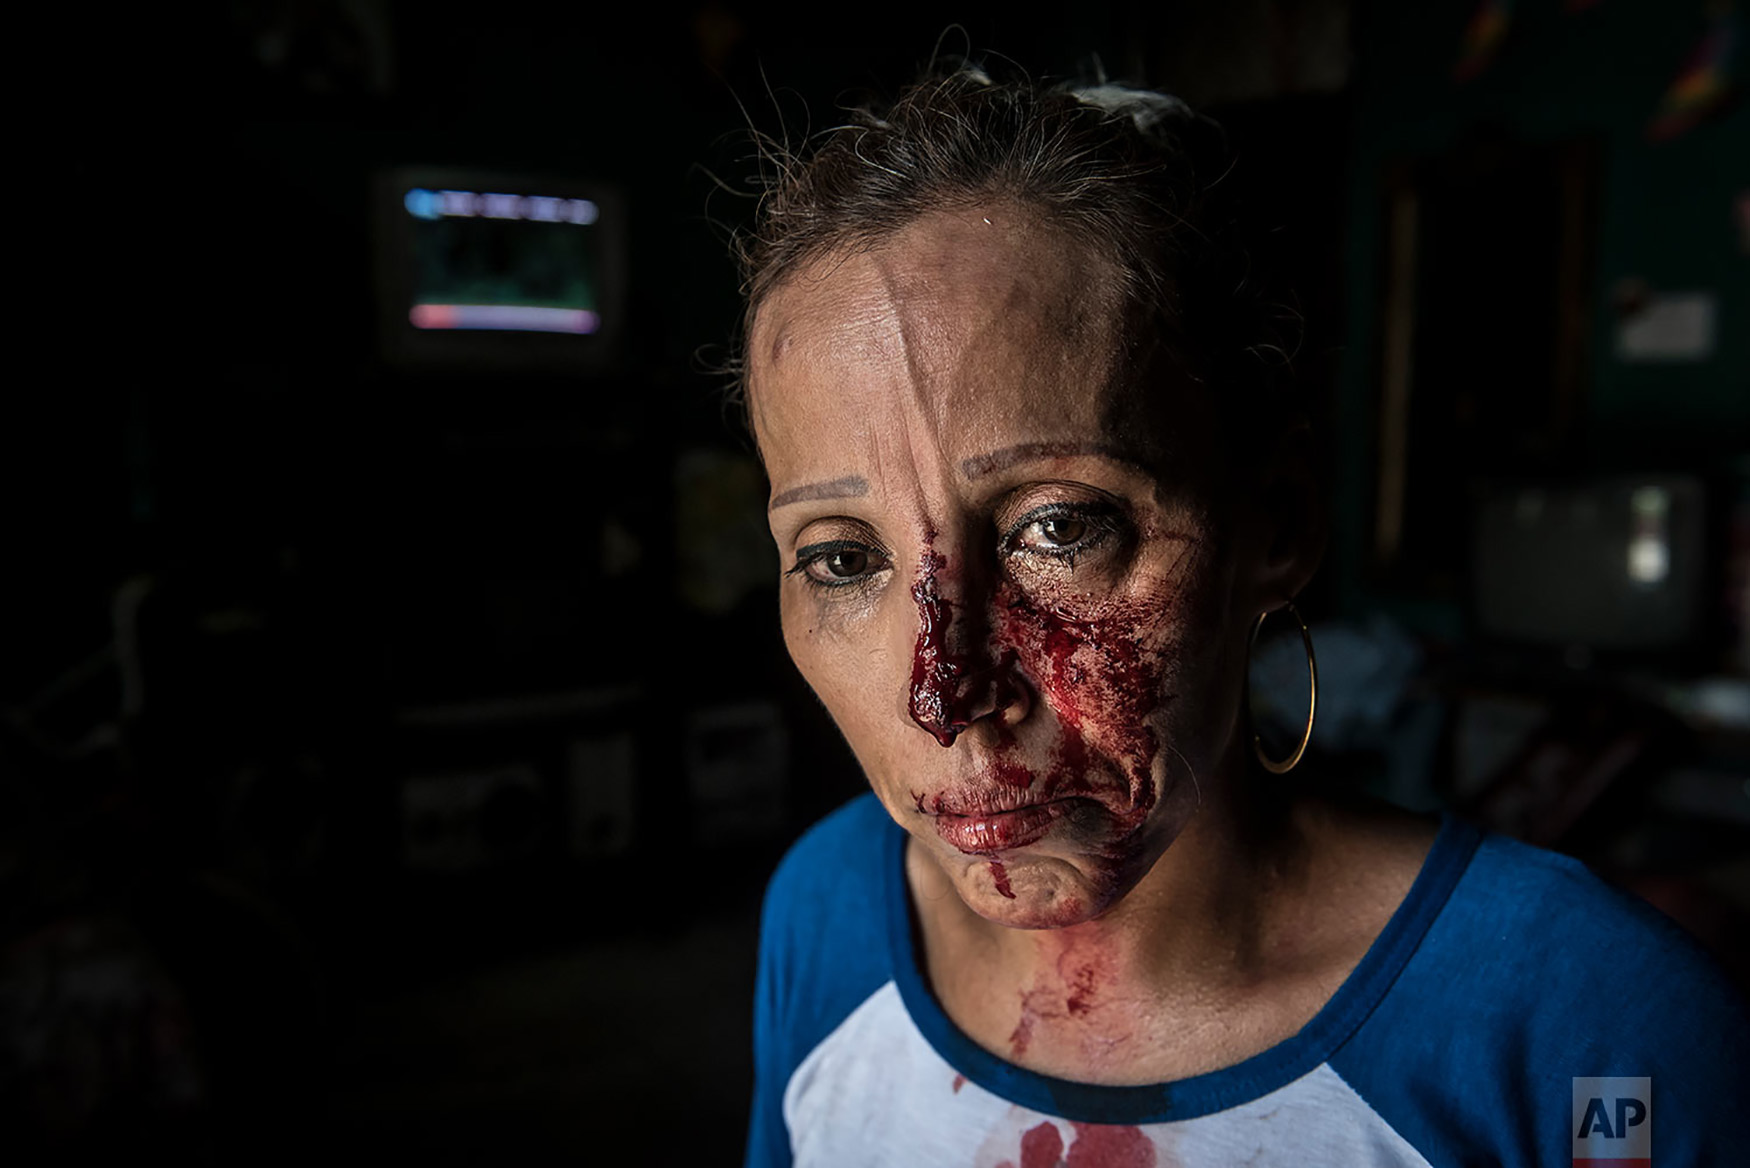 A woman with her face bloodied after she was pummeled by the police, stands in shock inside a house after a peaceful anti-government march was dissolved violently by government forces, in Managua, Nicaragua, Sept. 23, 2018. Police and militias opened fire on the demonstrators leaving at least one dead and several wounded. (AP Photo/Oscar Navarrete)